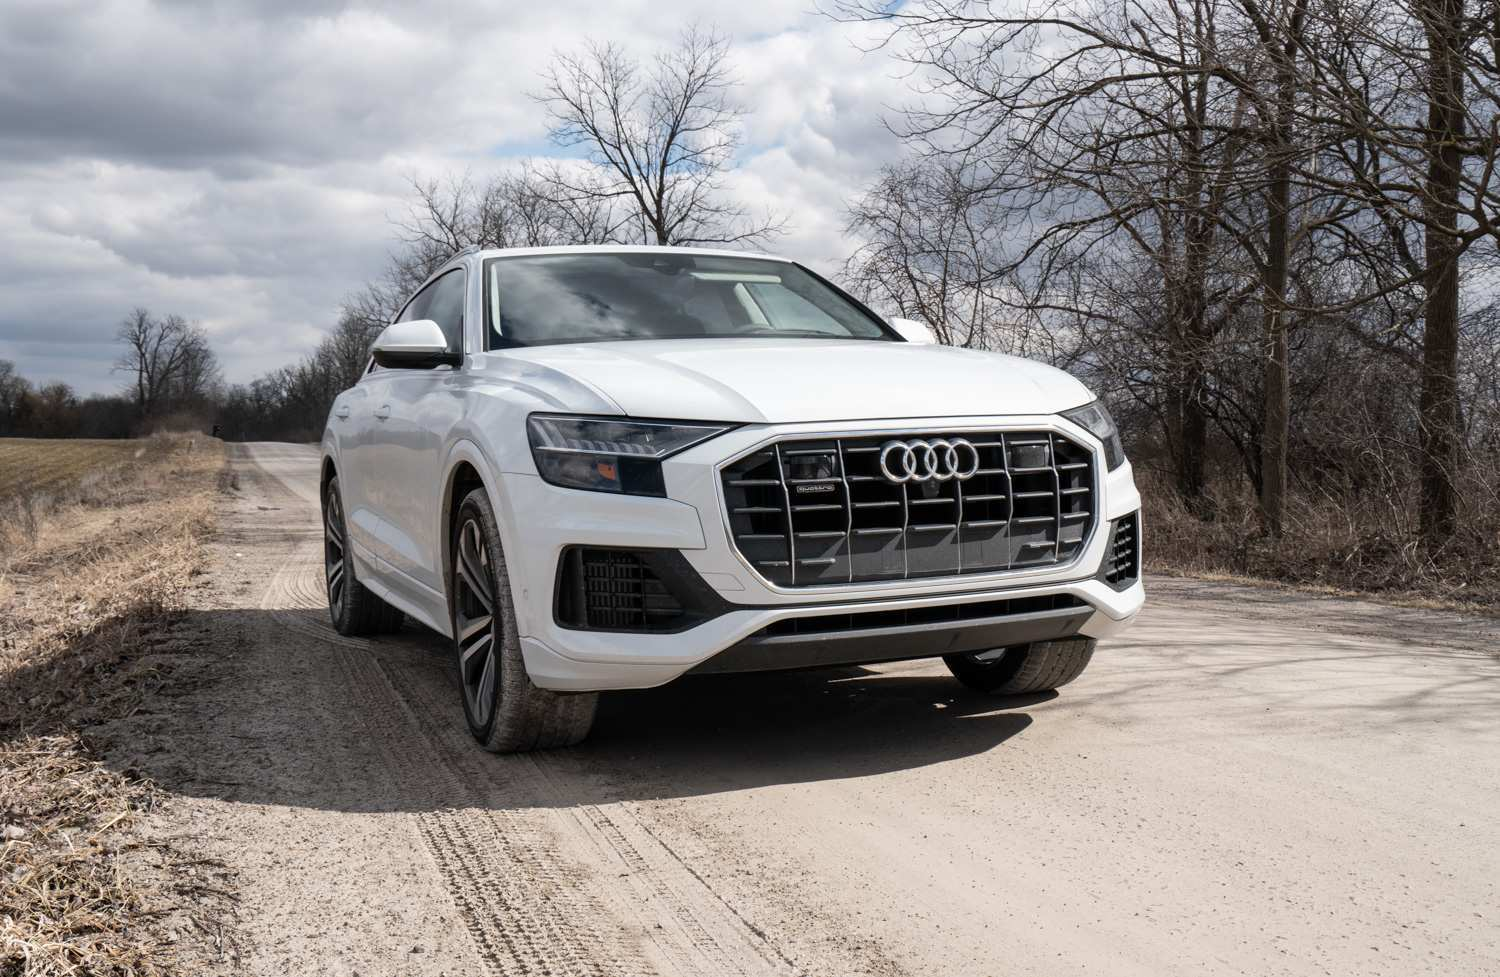 48 Great 2020 Audi Q8 Price Release by 2020 Audi Q8 Price